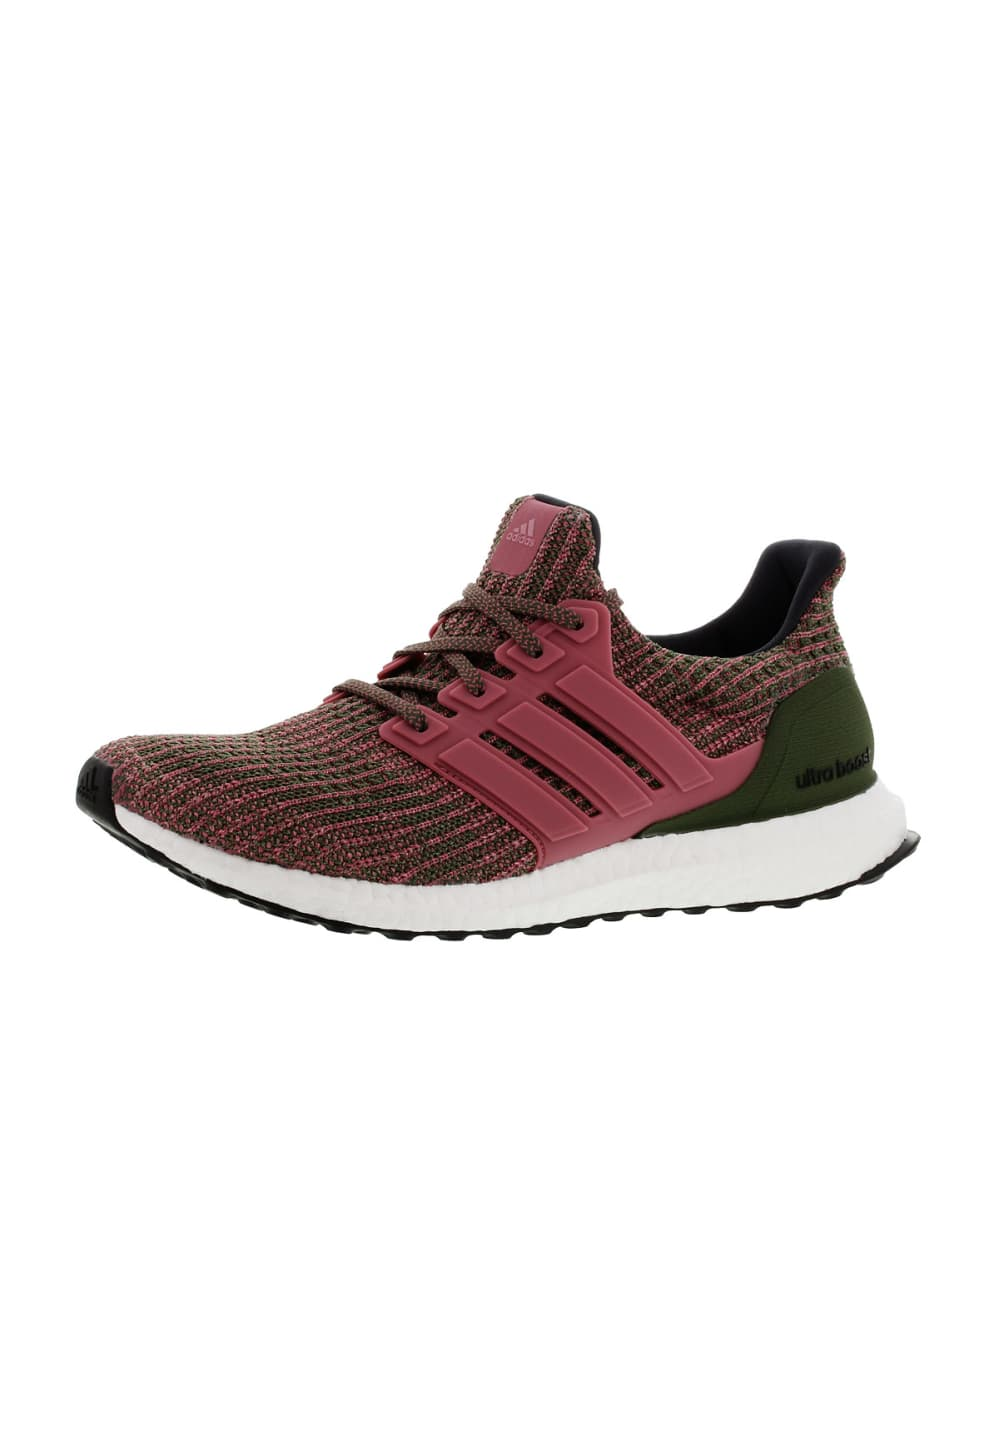 adidas Ultra Boost Chaussures running pour Femme Rouge